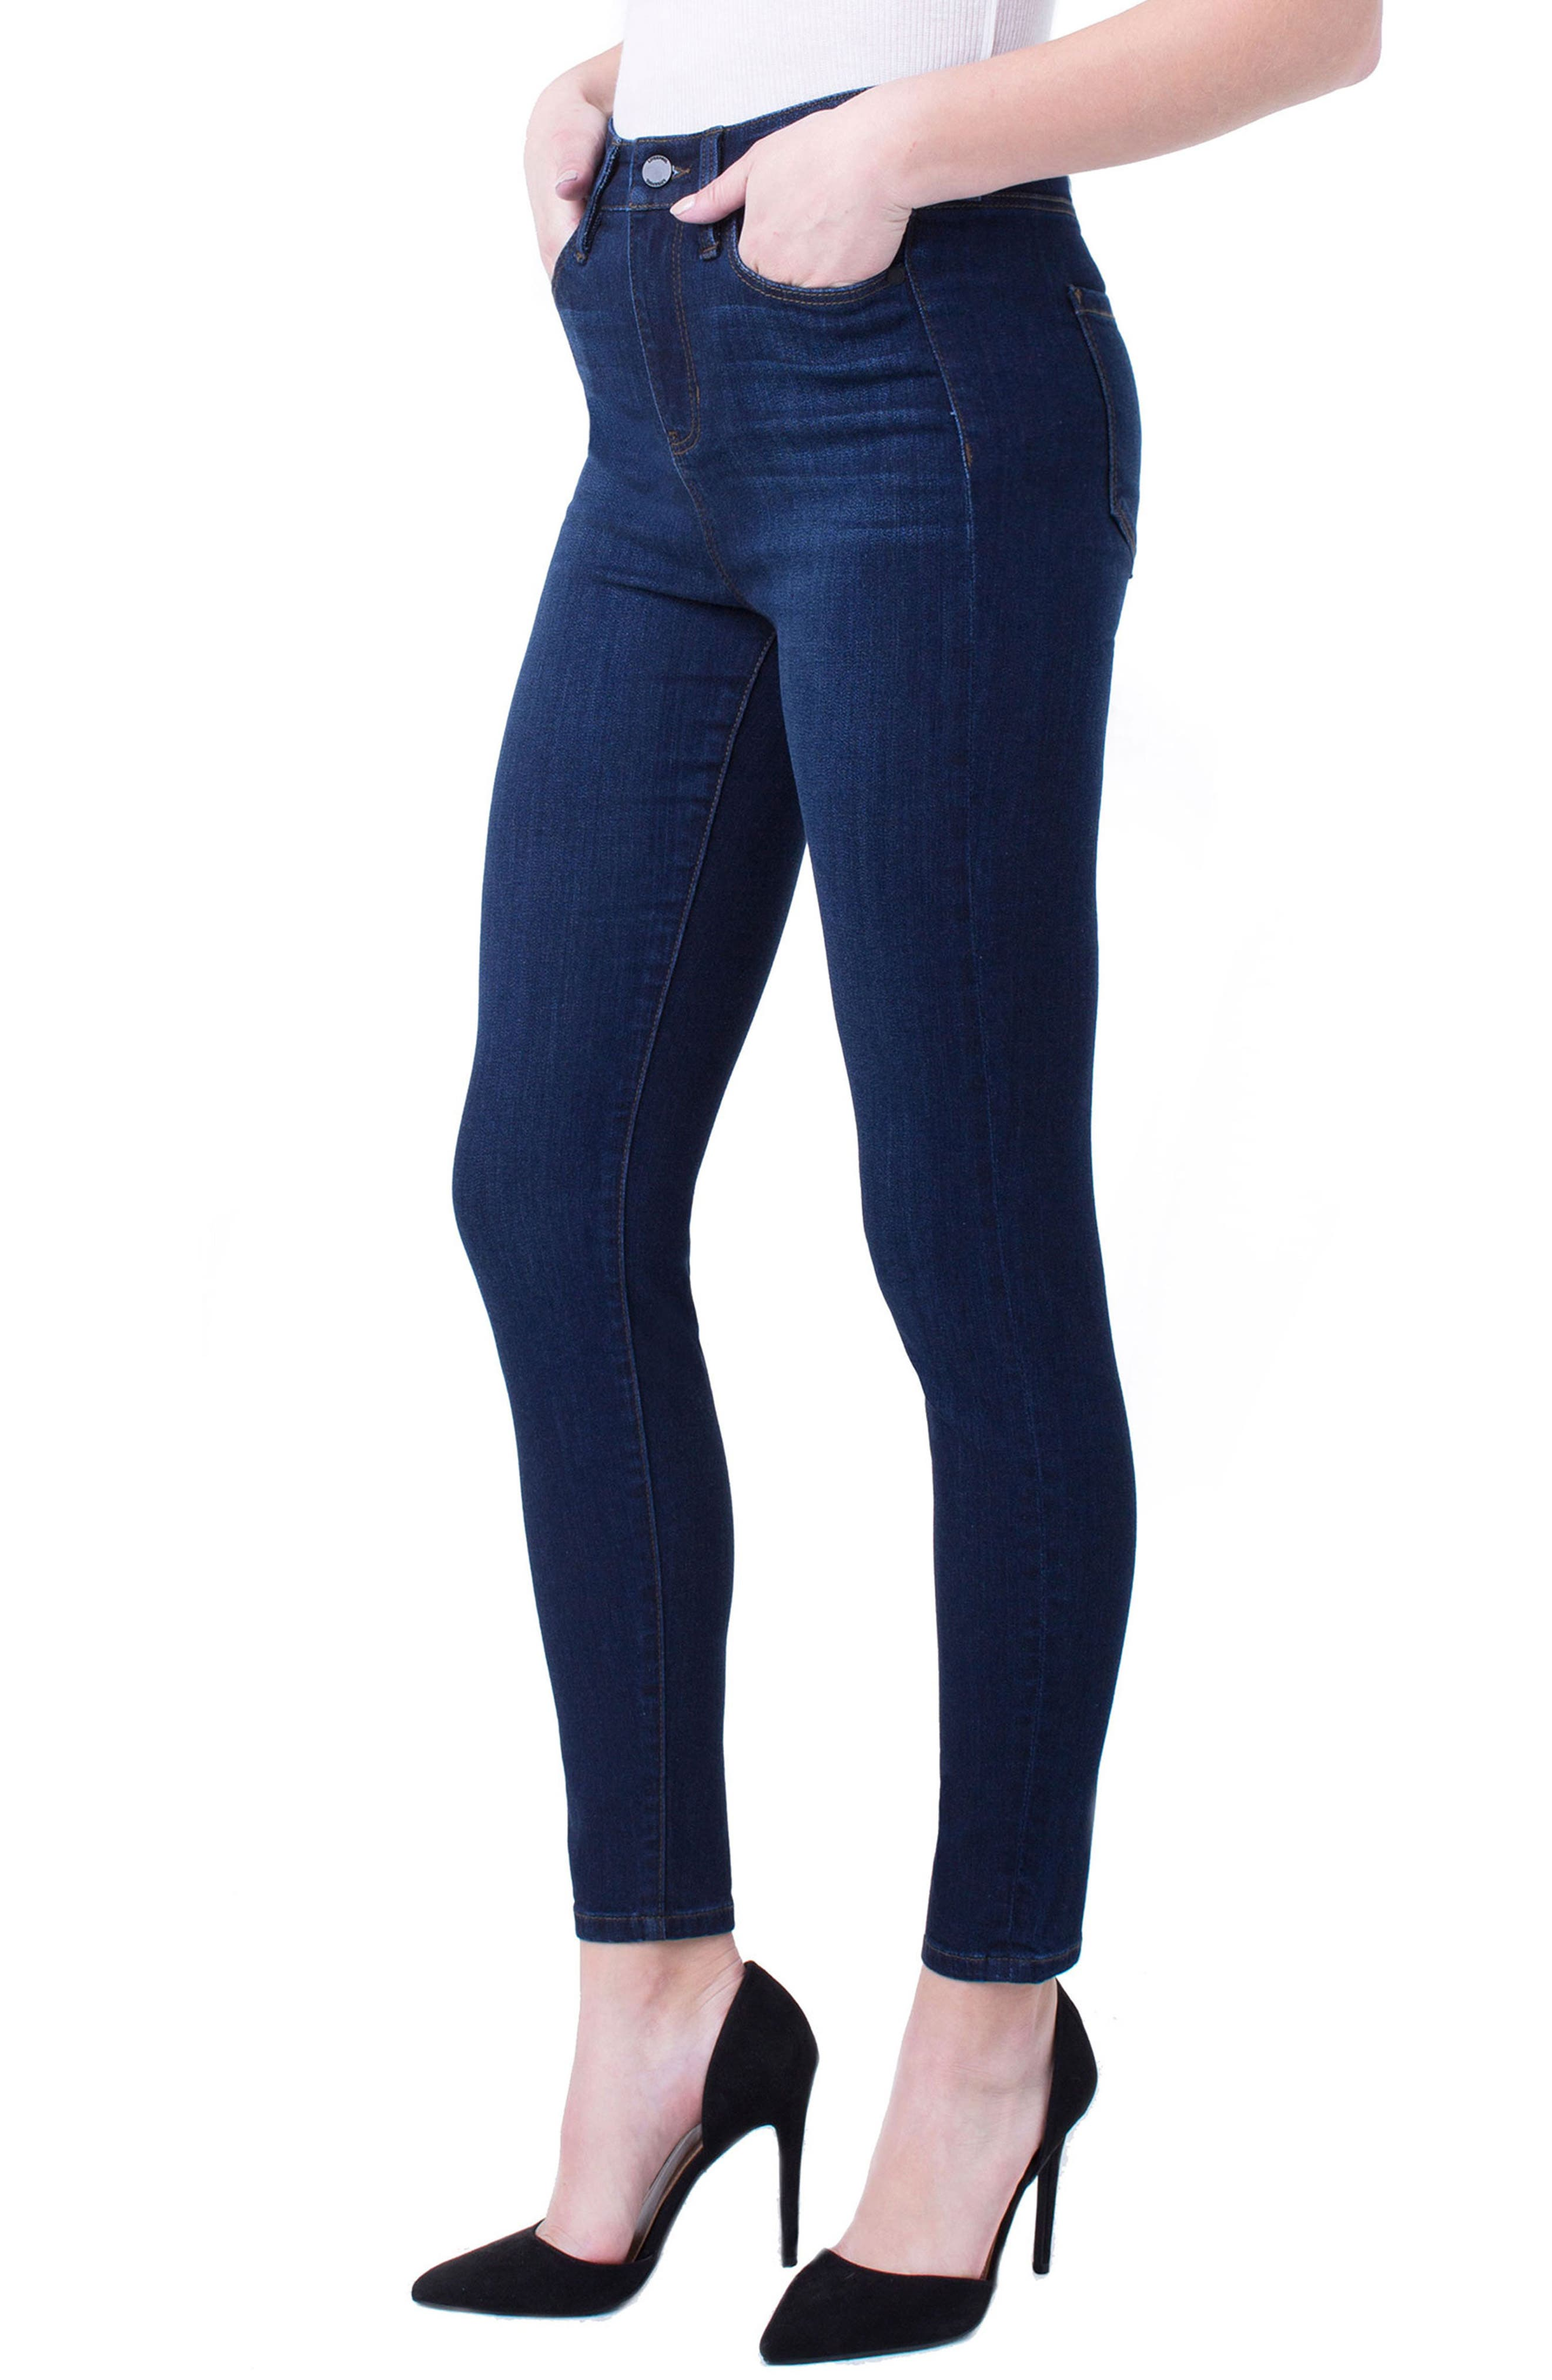 Bridget High Waist Ankle Jeans,                             Main thumbnail 1, color,                             DOHENY DARK